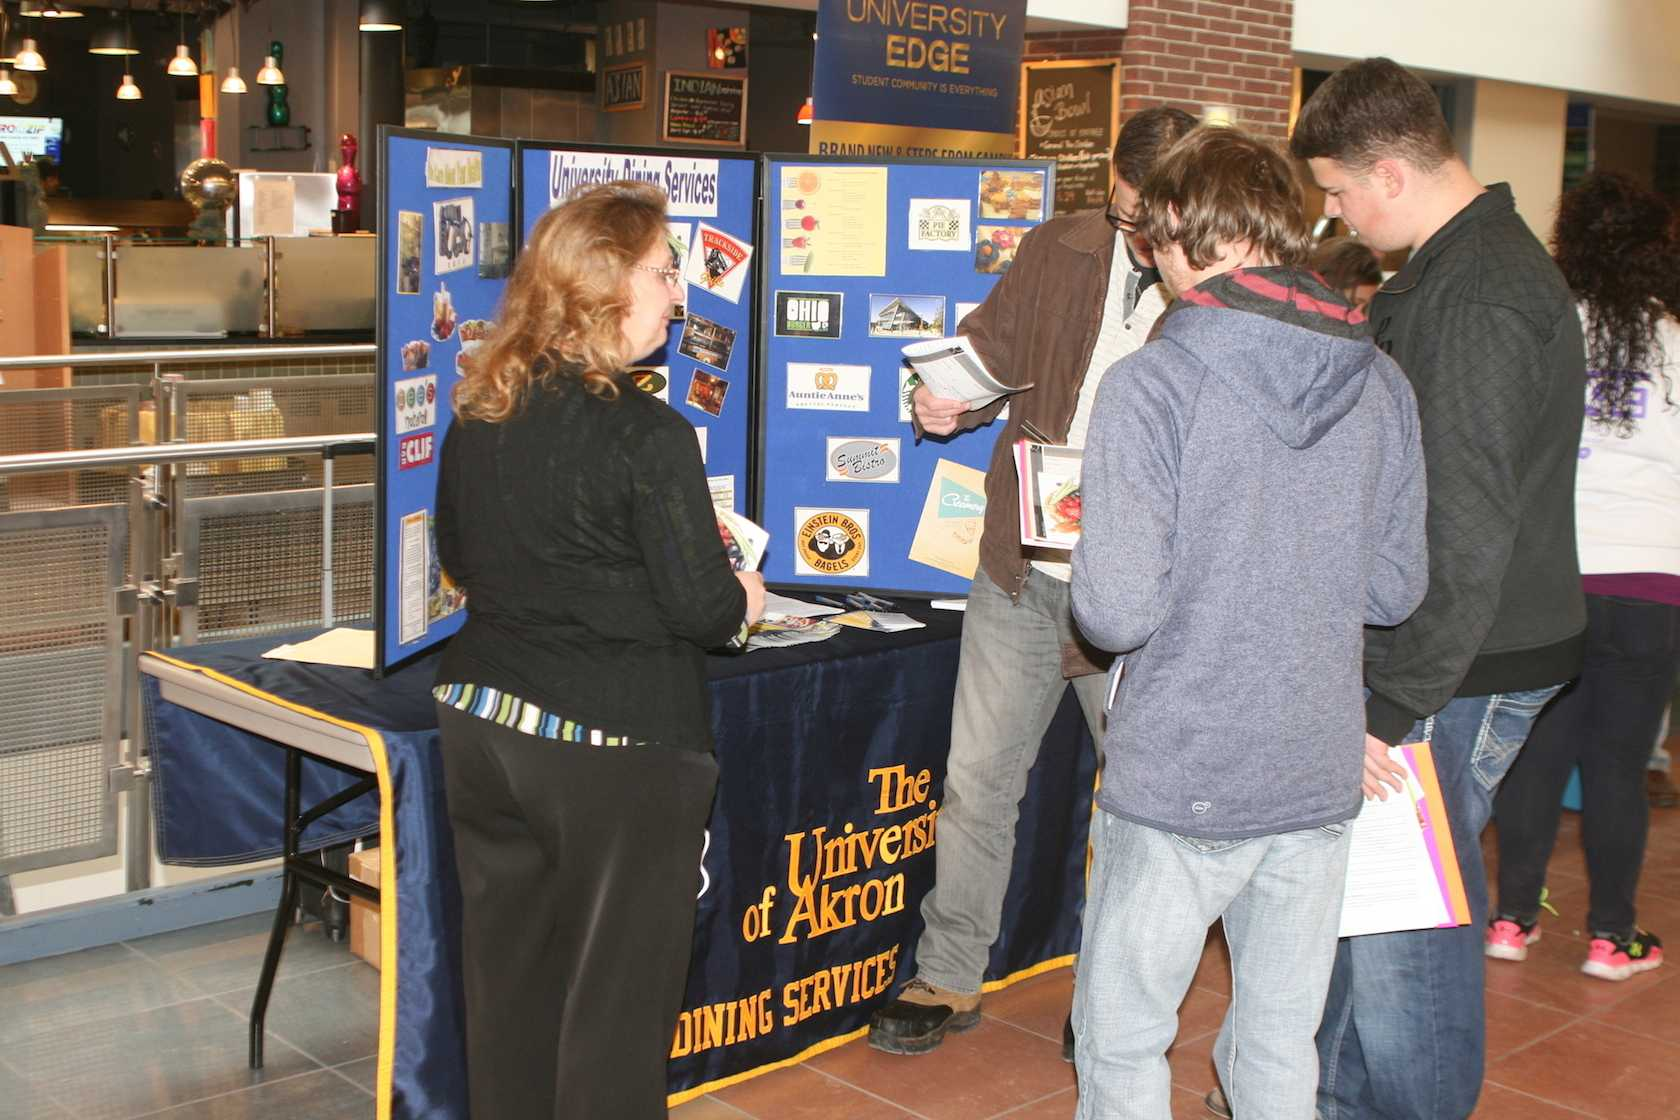 Three students receive dining plan information in front of the UA Dining Services table.